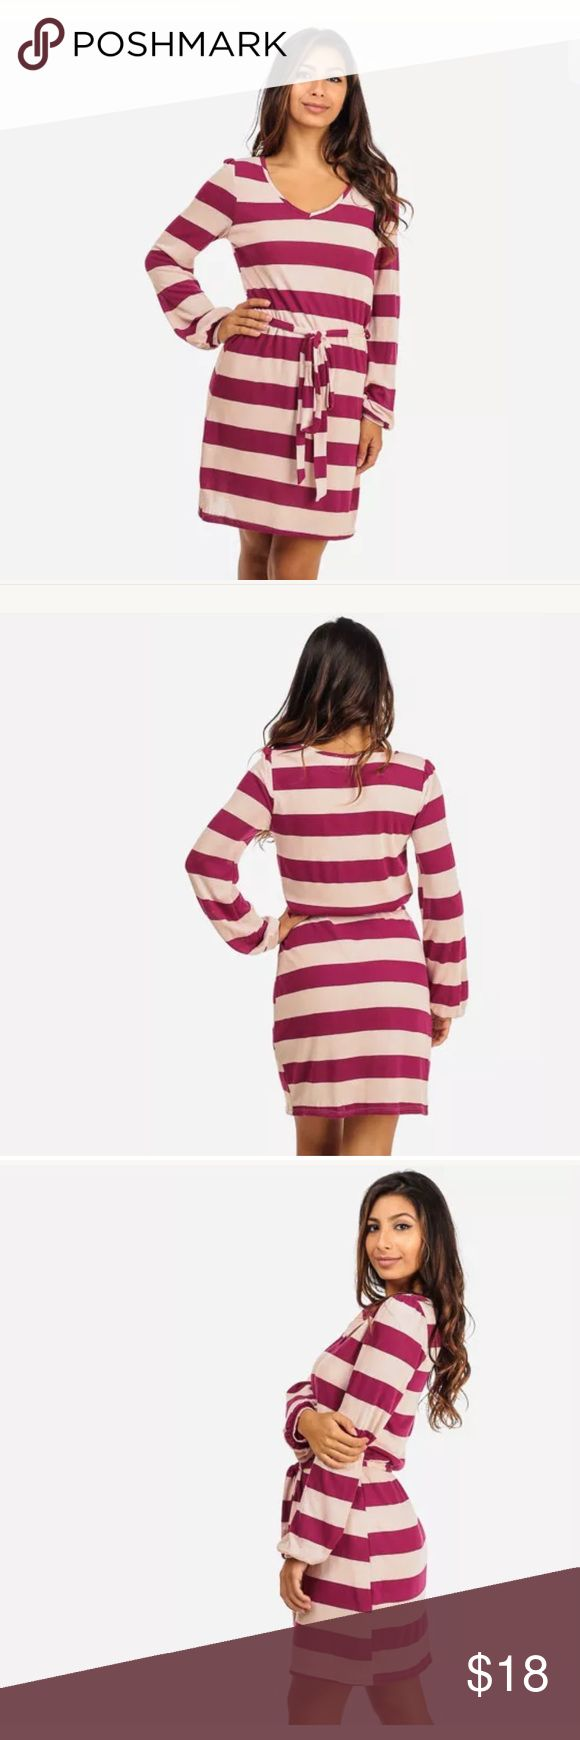 """Womens Juniors Striped Long Sleeve Knit Dress Featuring a V-neckline, long sleeves with elastic cuffs, tie-waist belt and belt loops. Fully lined. Stretchy material made from: self - 47% rayon, 48% polyester and 5% spandex; lining - 100% polyester. Length from underarm down is approx 27"""" (measured from a size M). Made in USA. Our clothes are junior sizes similar to junior clothing stores like Forever 21, Wet Seal, and Charlotte Russe. If you would like  exact measurements for a particular…"""